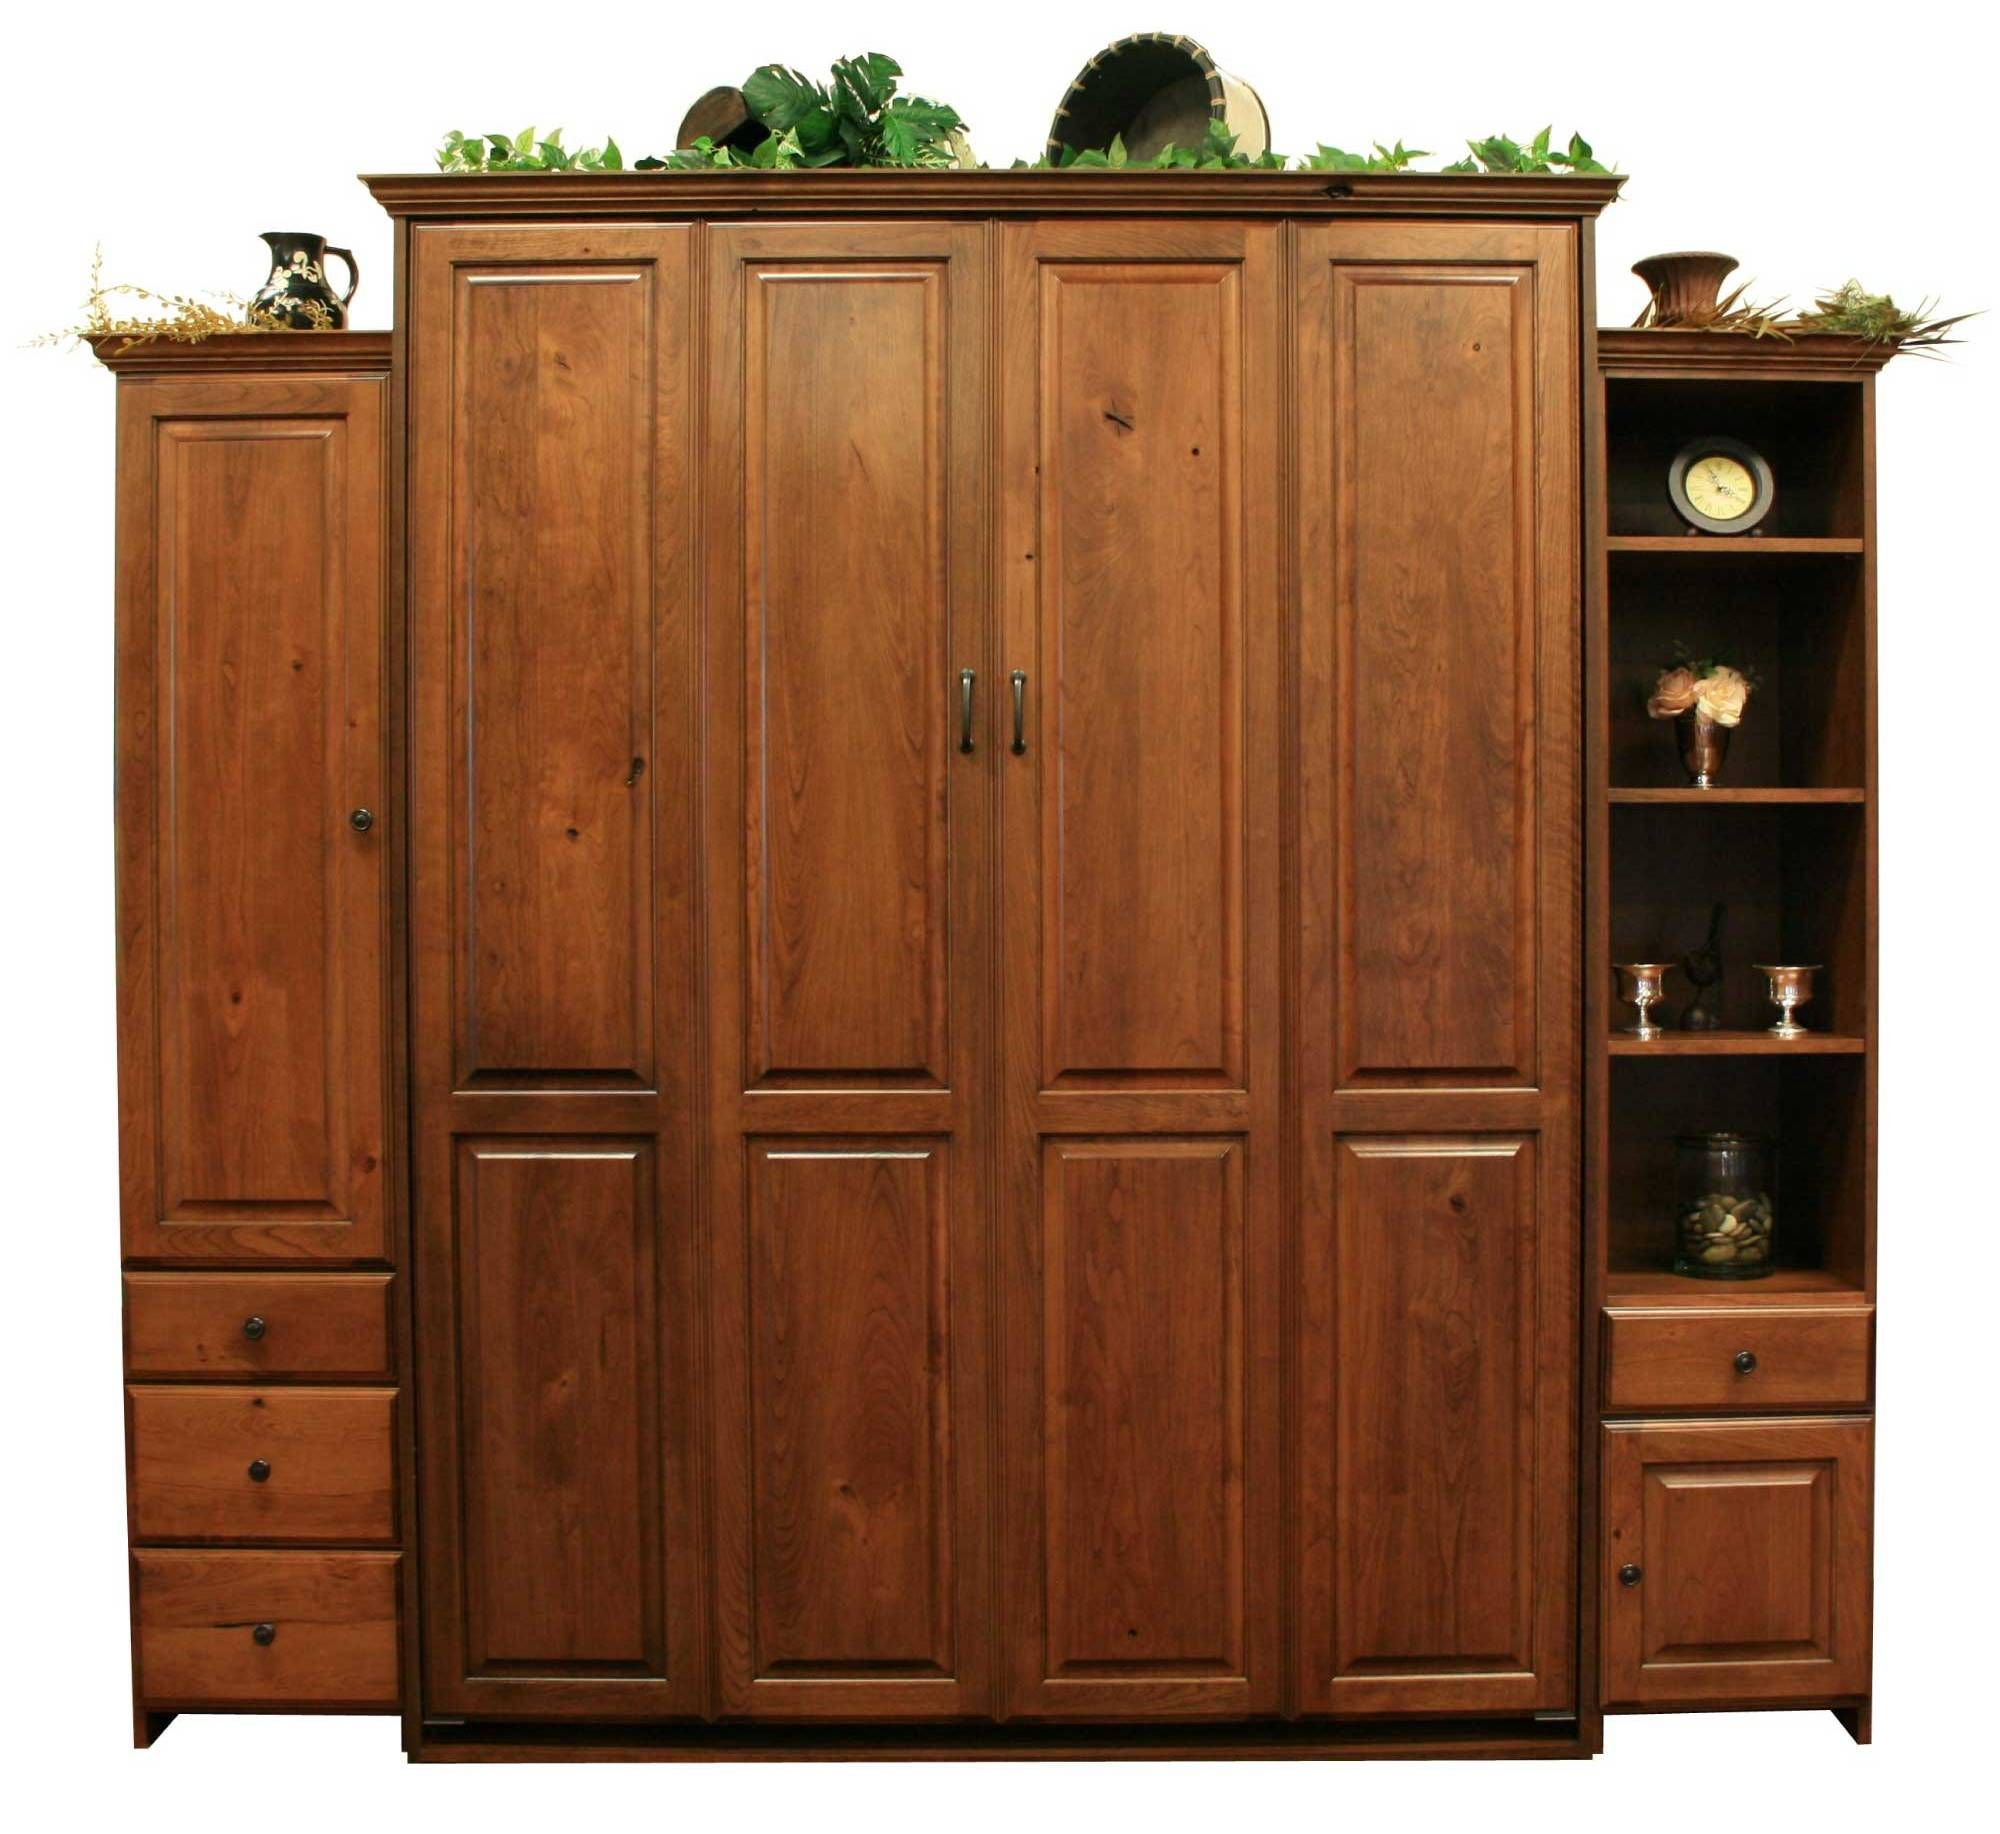 Queen size Rustic Cherry Sierra Murphy Bed with Autumn